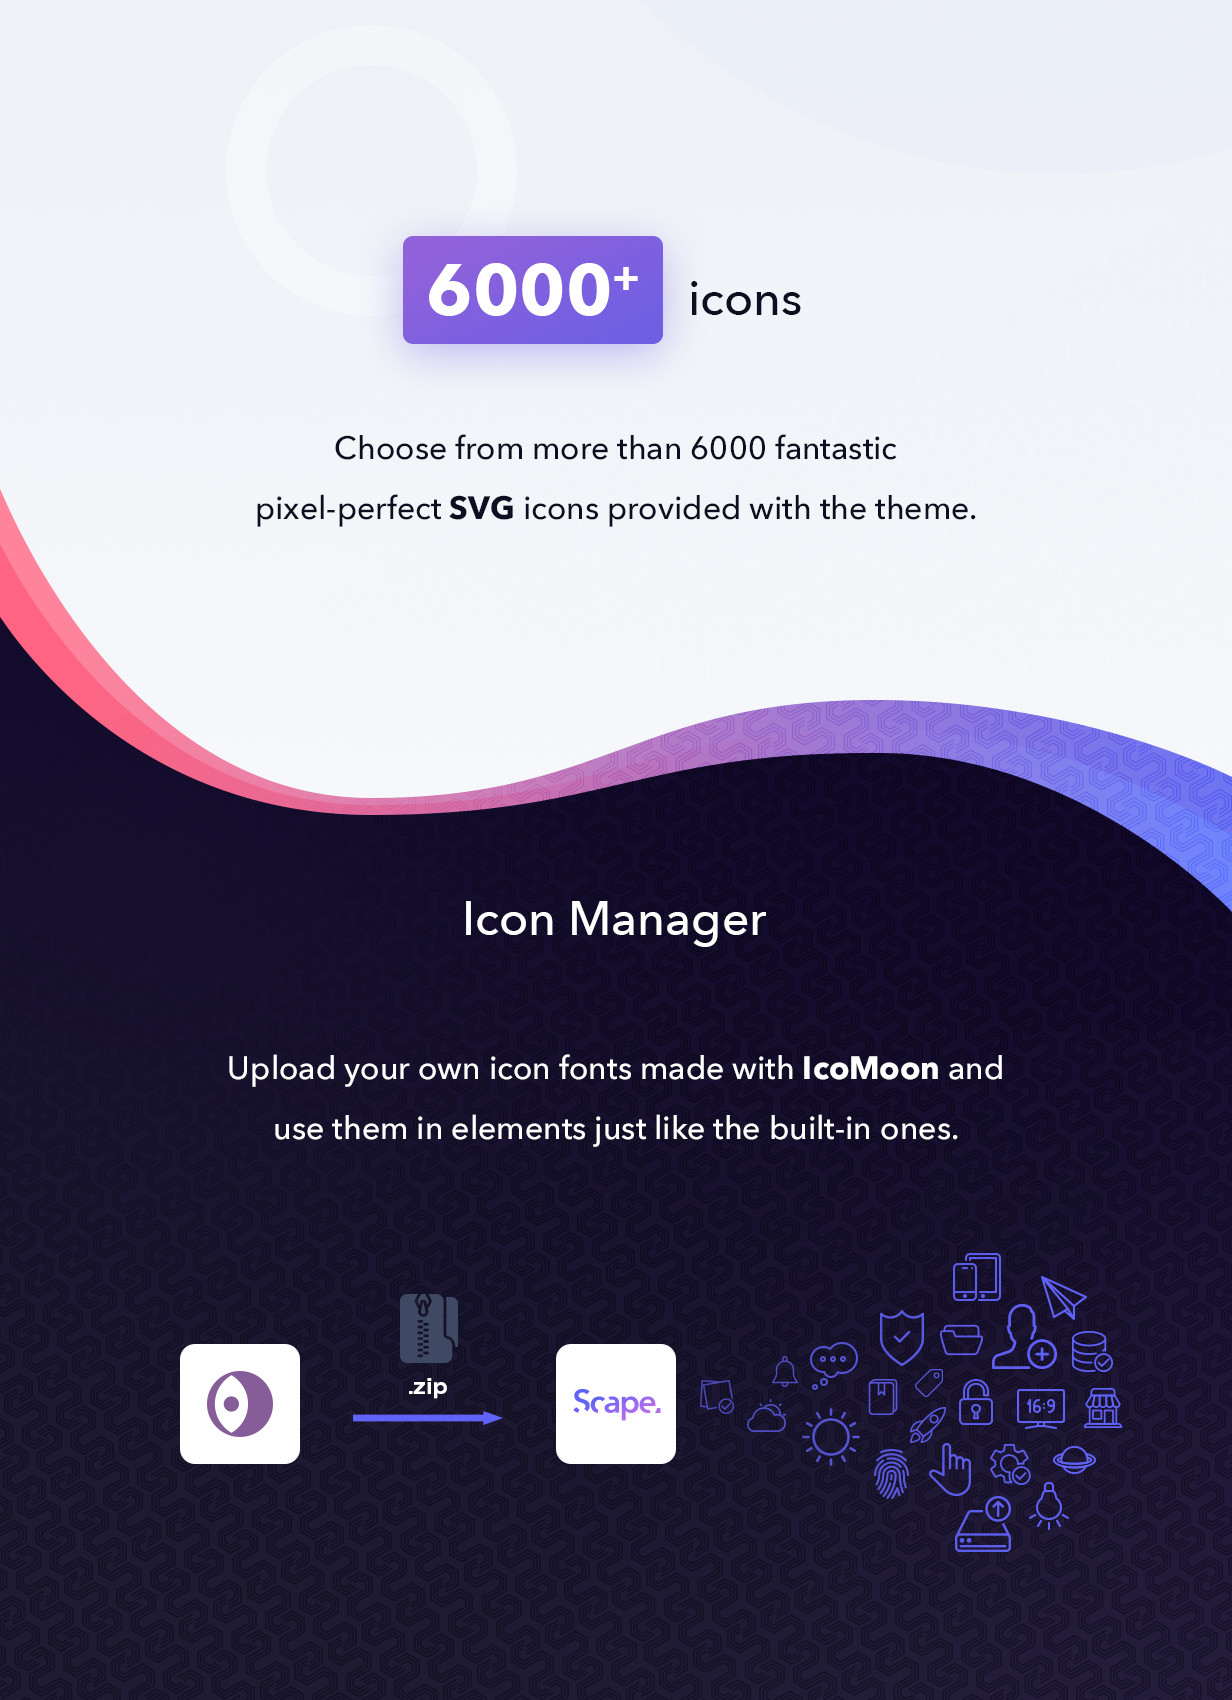 Built-in icons and icon manager